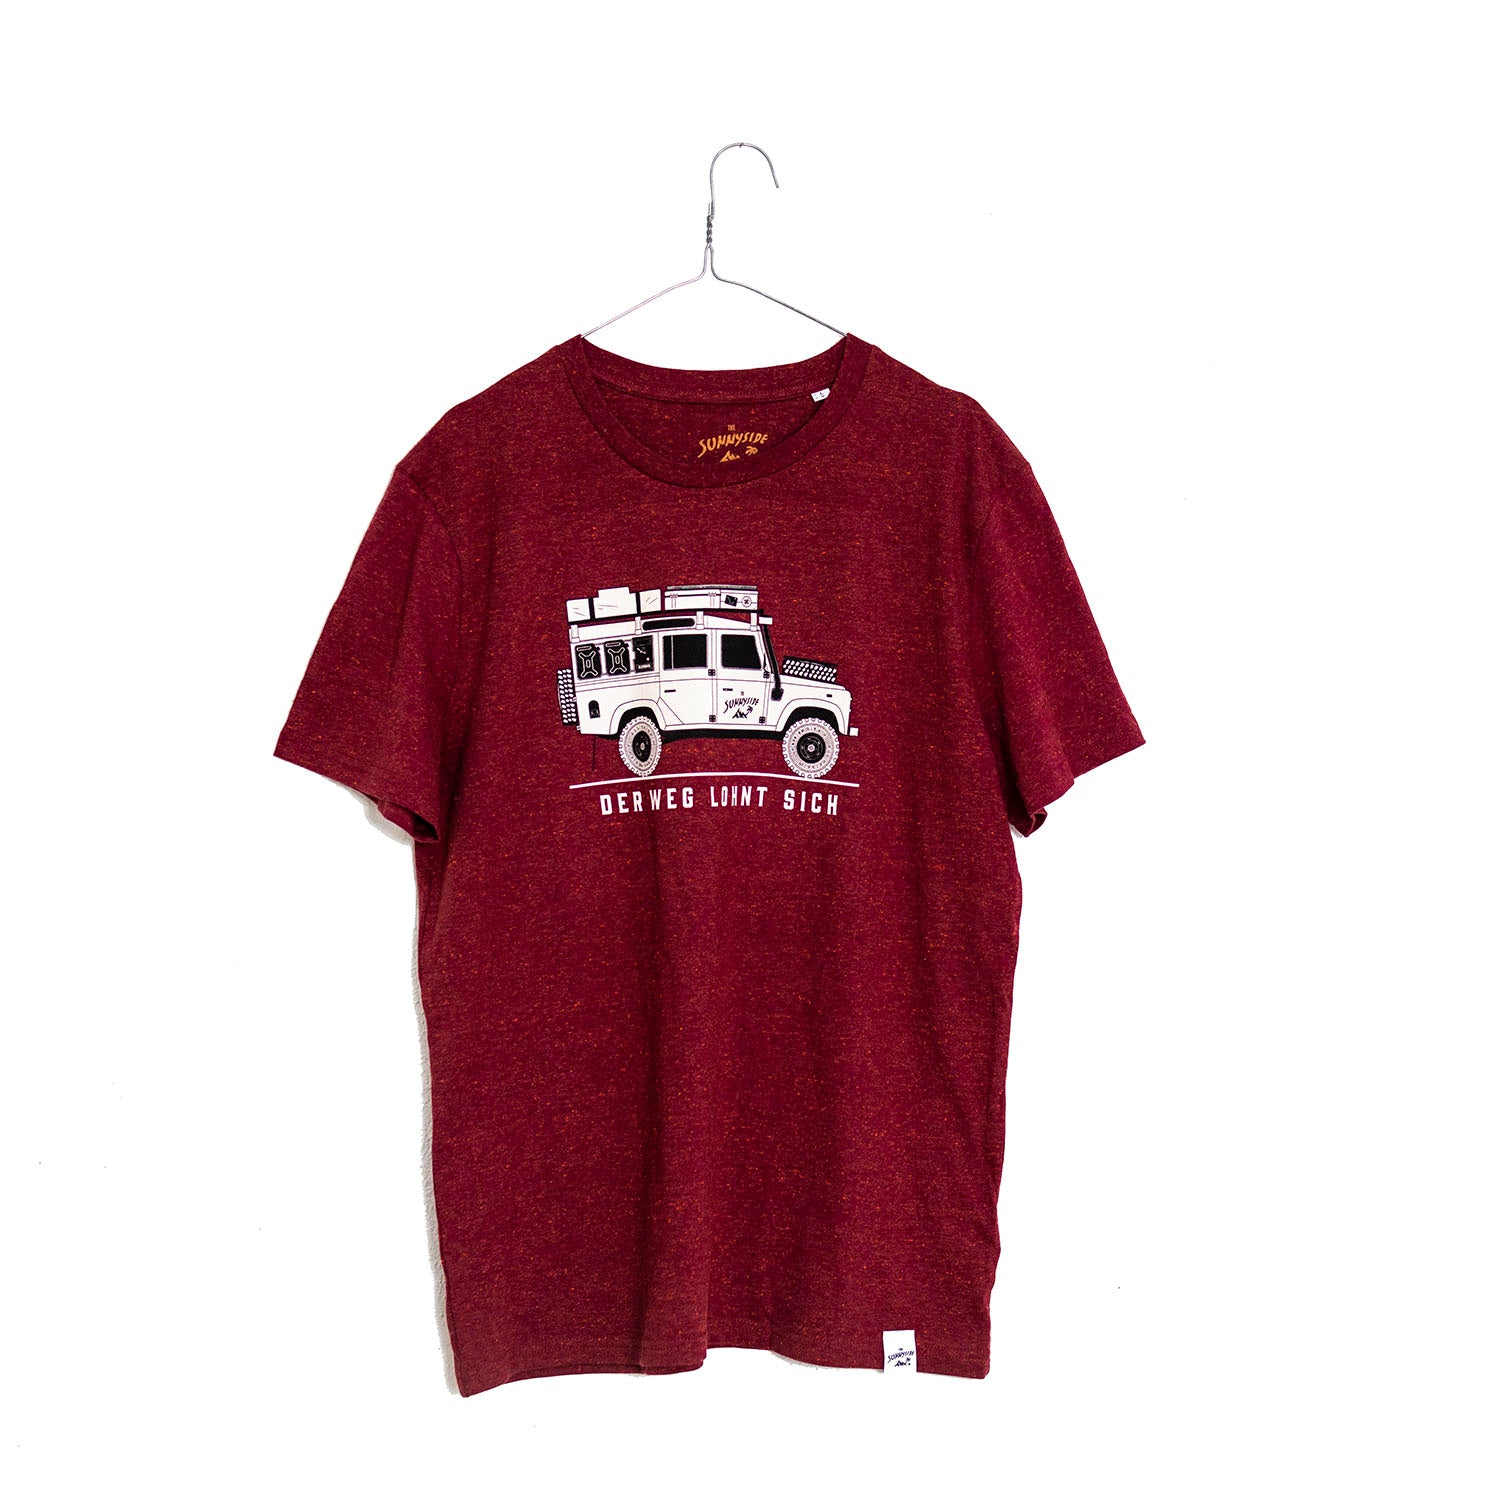 Willi T-Shirt - THE SUNNYSIDE